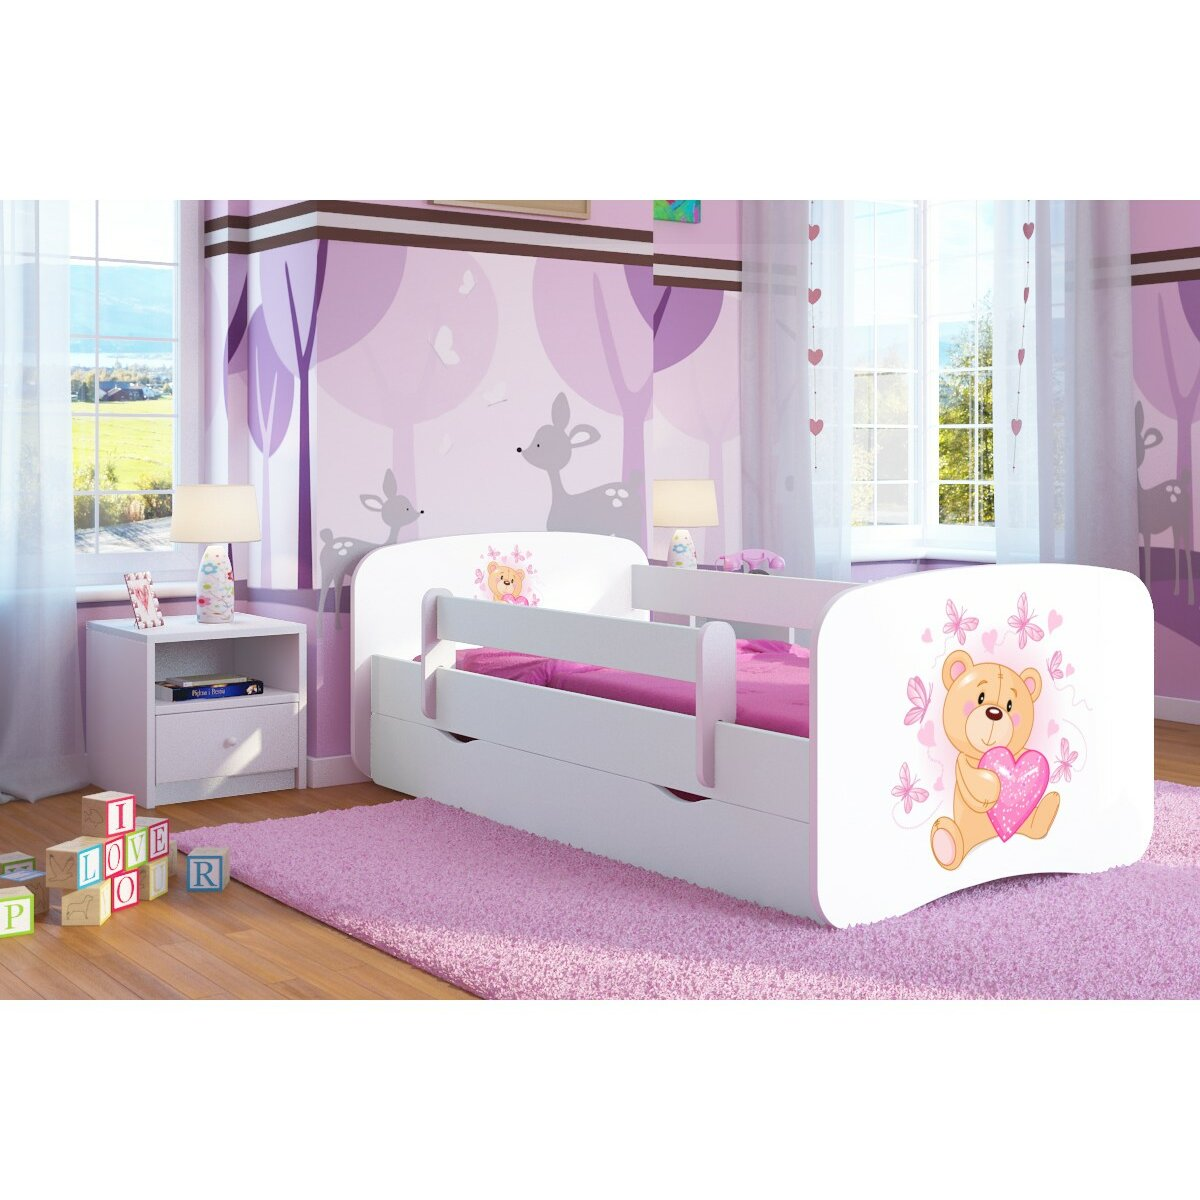 kocot kids kinderbett butterfly teddy mit matratze und. Black Bedroom Furniture Sets. Home Design Ideas